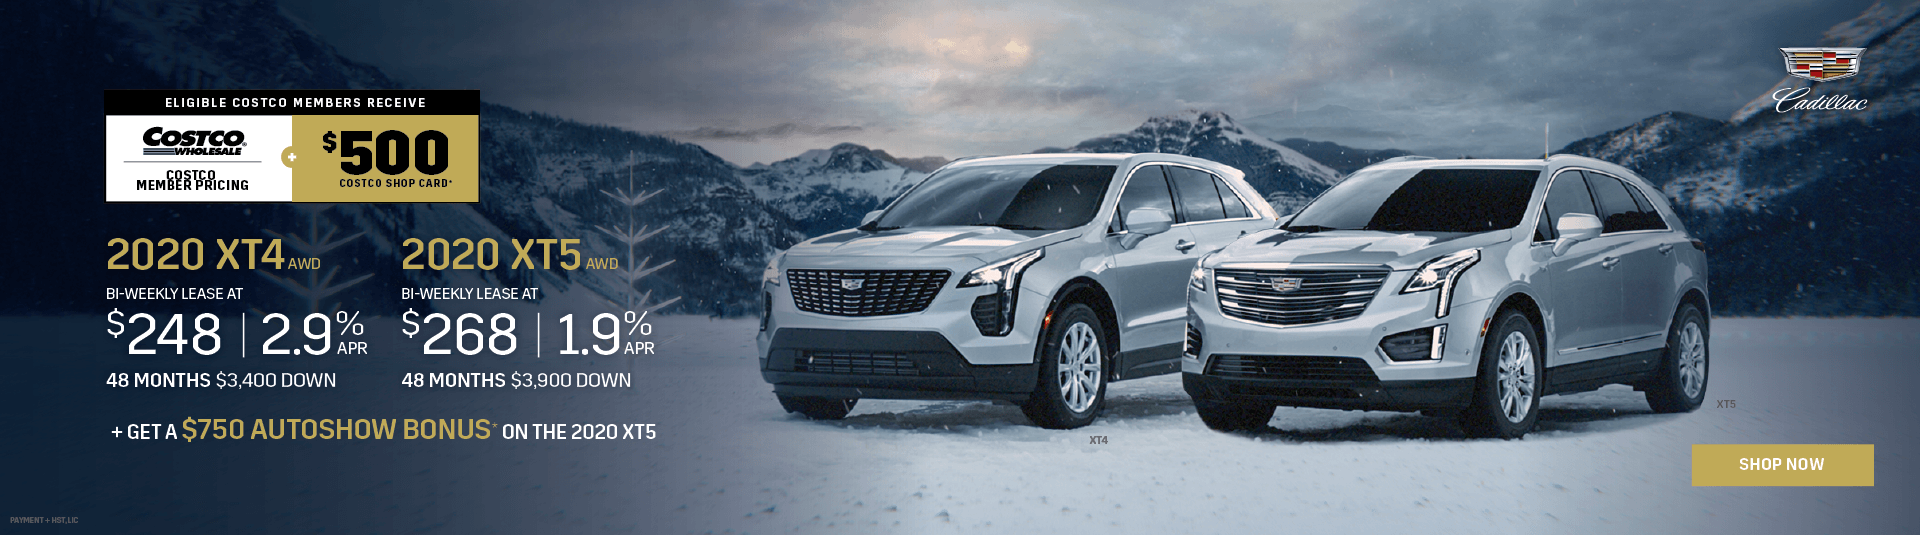 Cadillac XT4 & Cadillac XT5 Offers in Mississauga